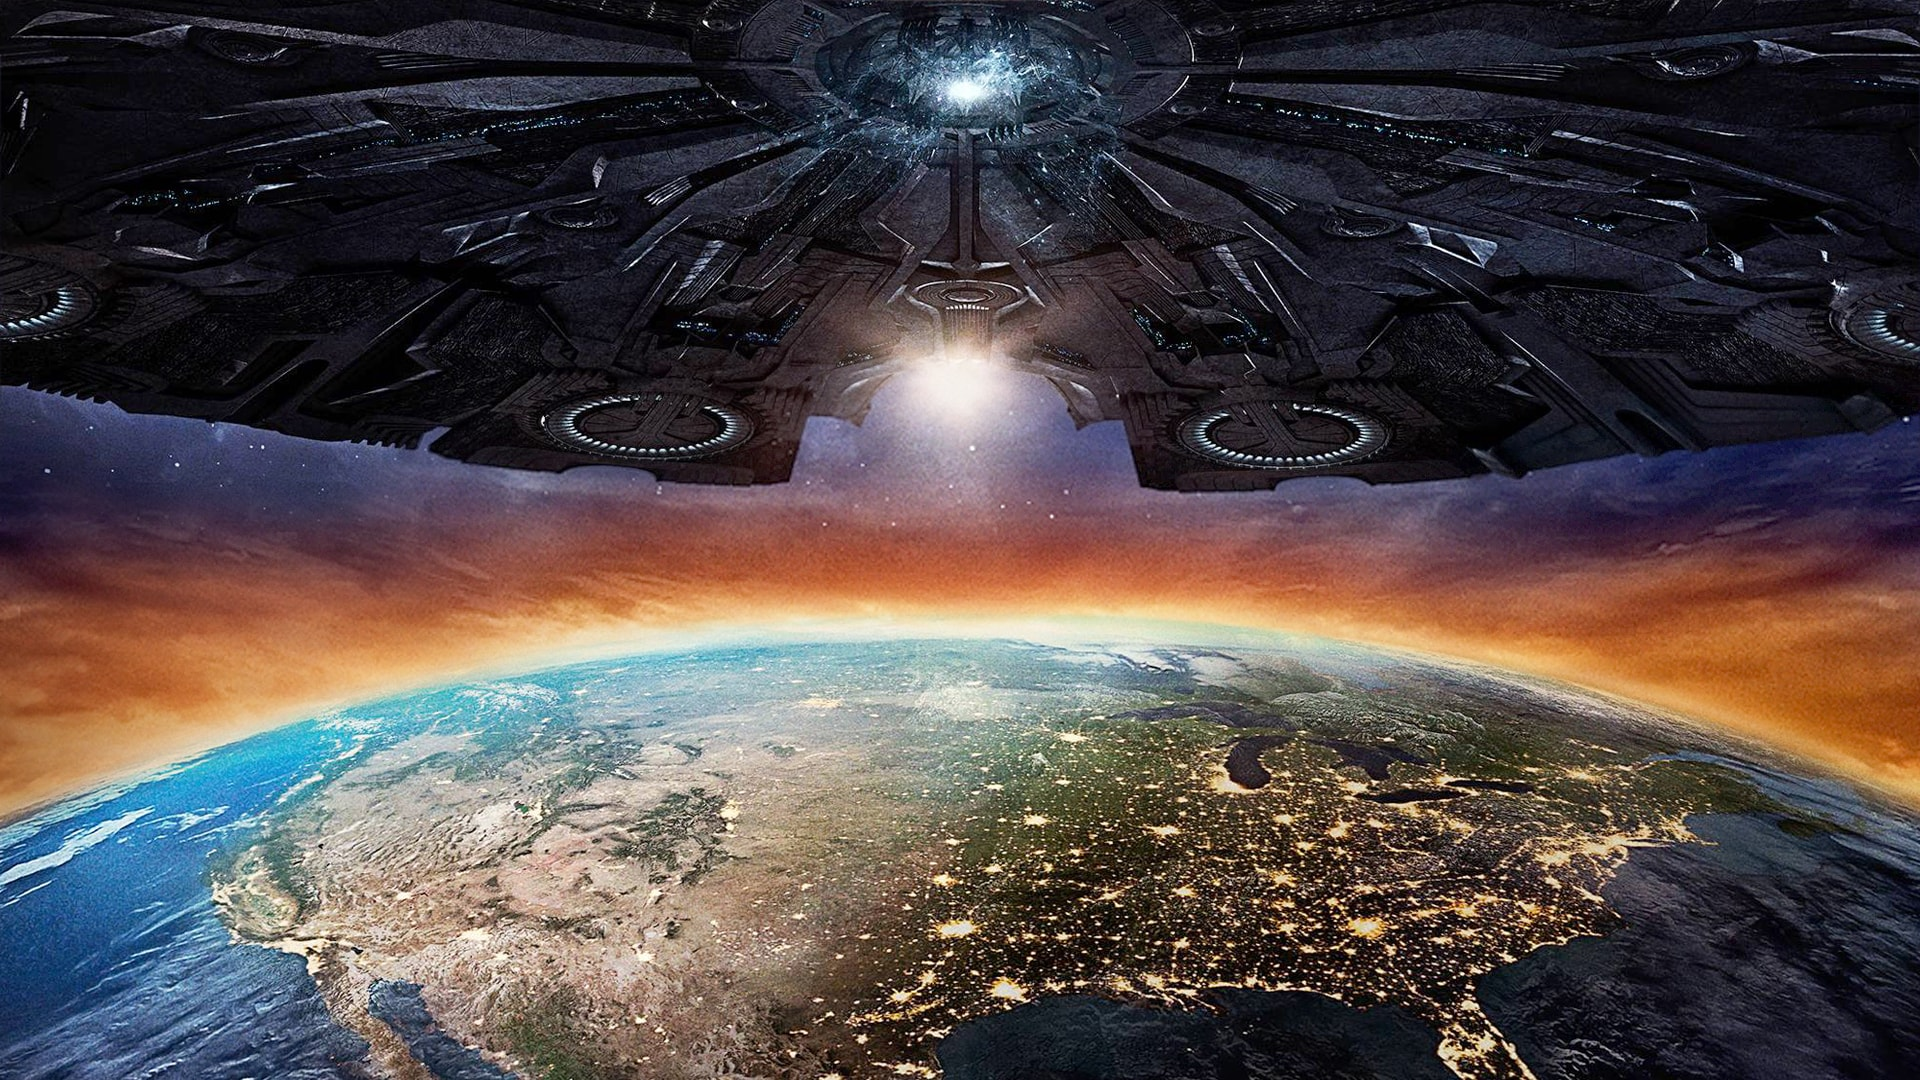 Independence Day Resurgence Wallpaper 4   1920 X 1080 stmednet 1920x1080